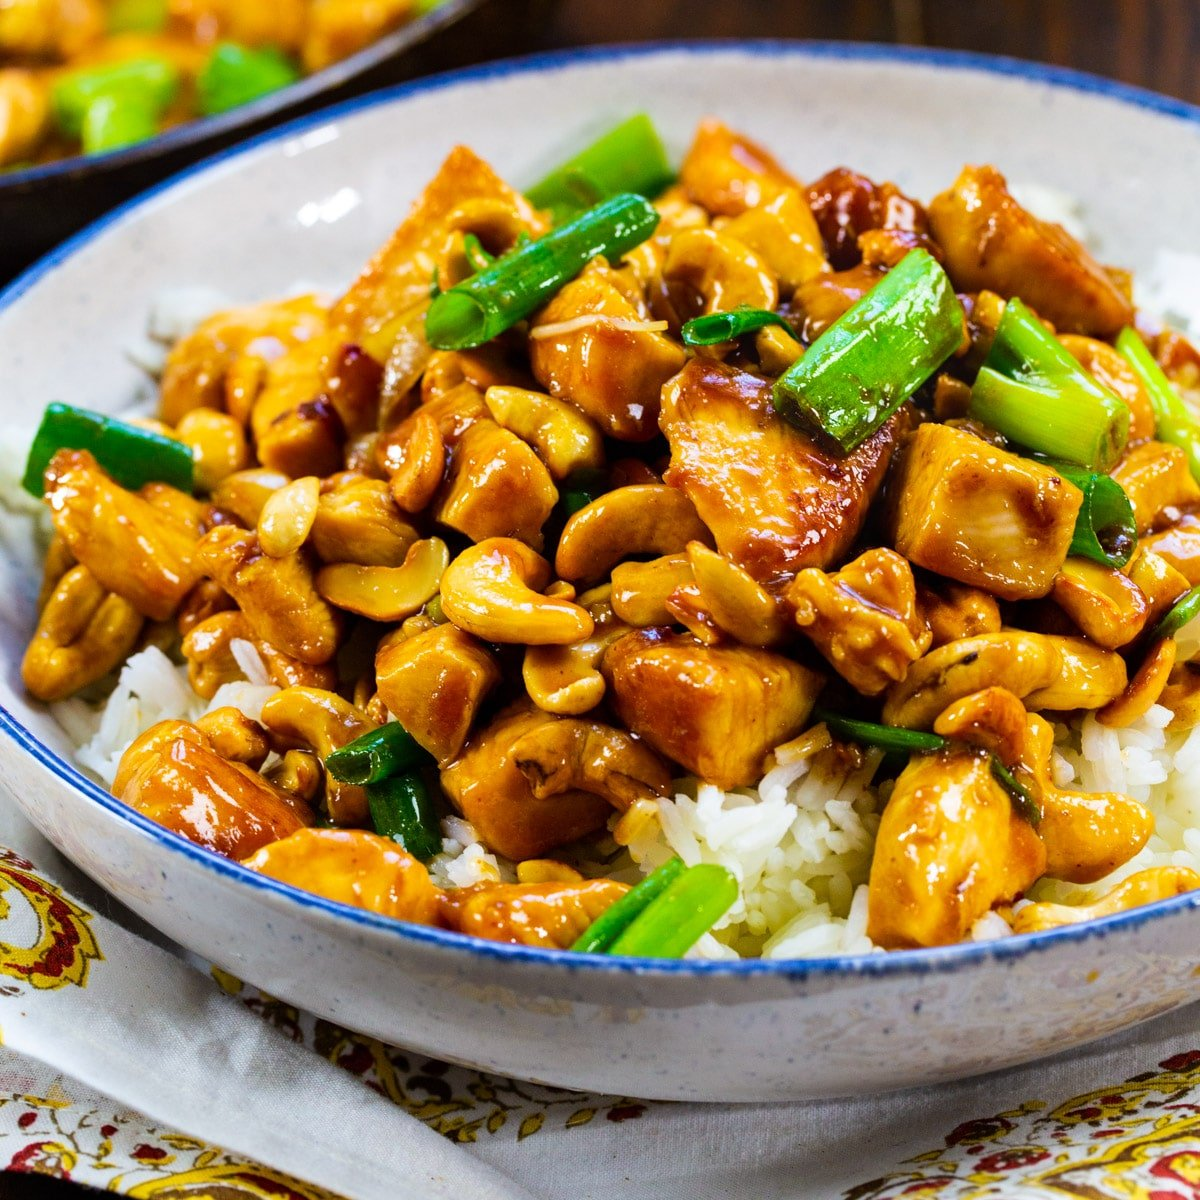 Cashew Chicken over rice in a bowl.